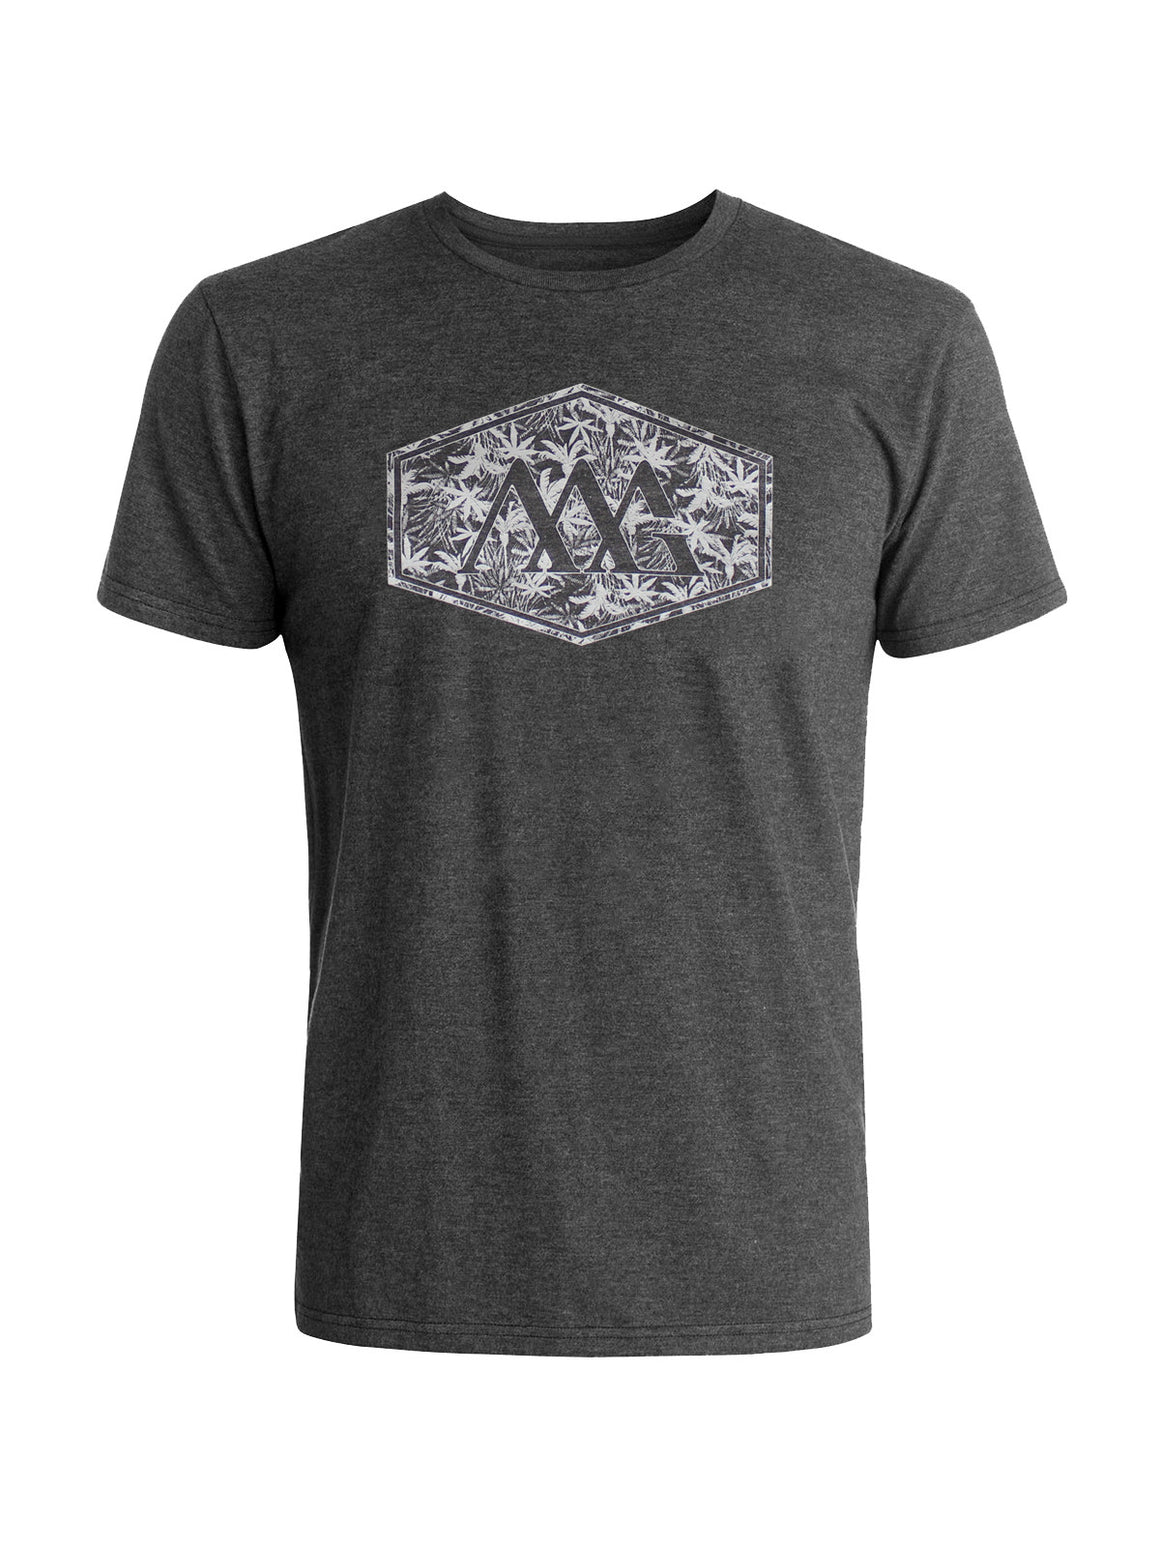 Hex Aloha Tee Shirt - Charcoal Heather (Hawaiian Black / White)